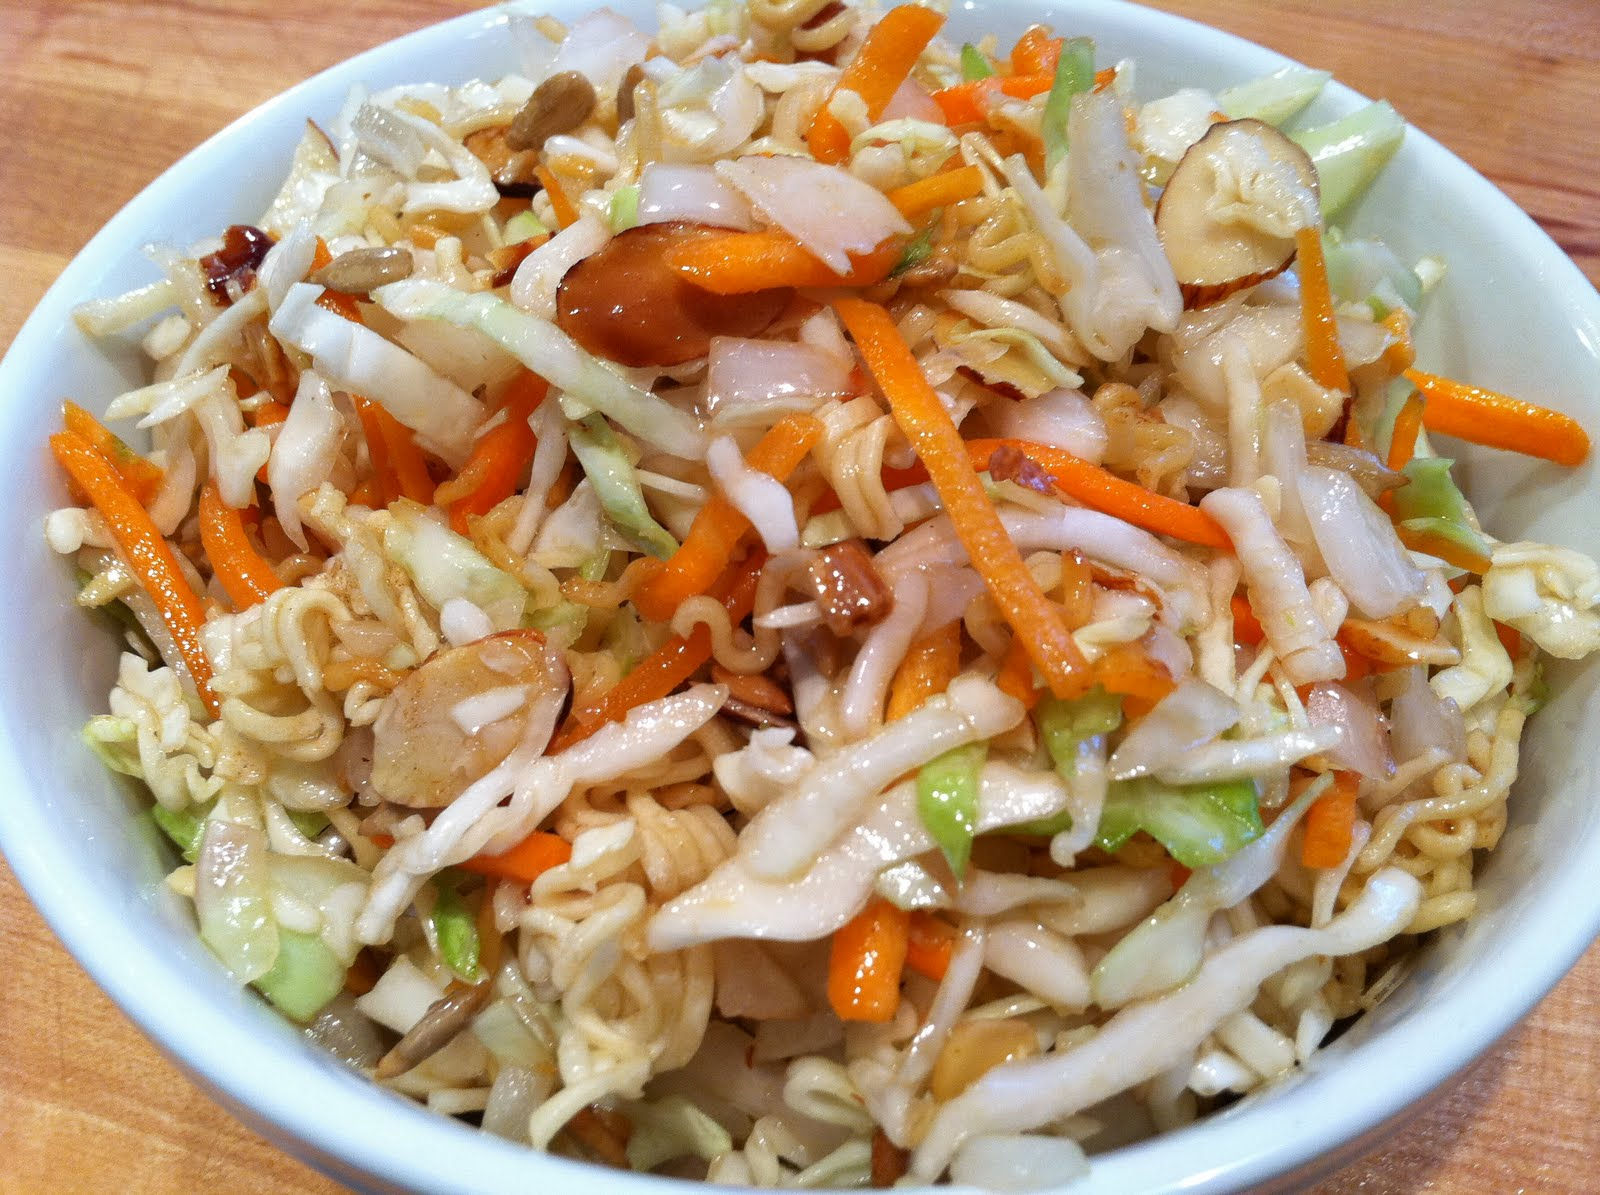 Everything Tasty from My Kitchen: Crunchy Ramen Noodle Salad